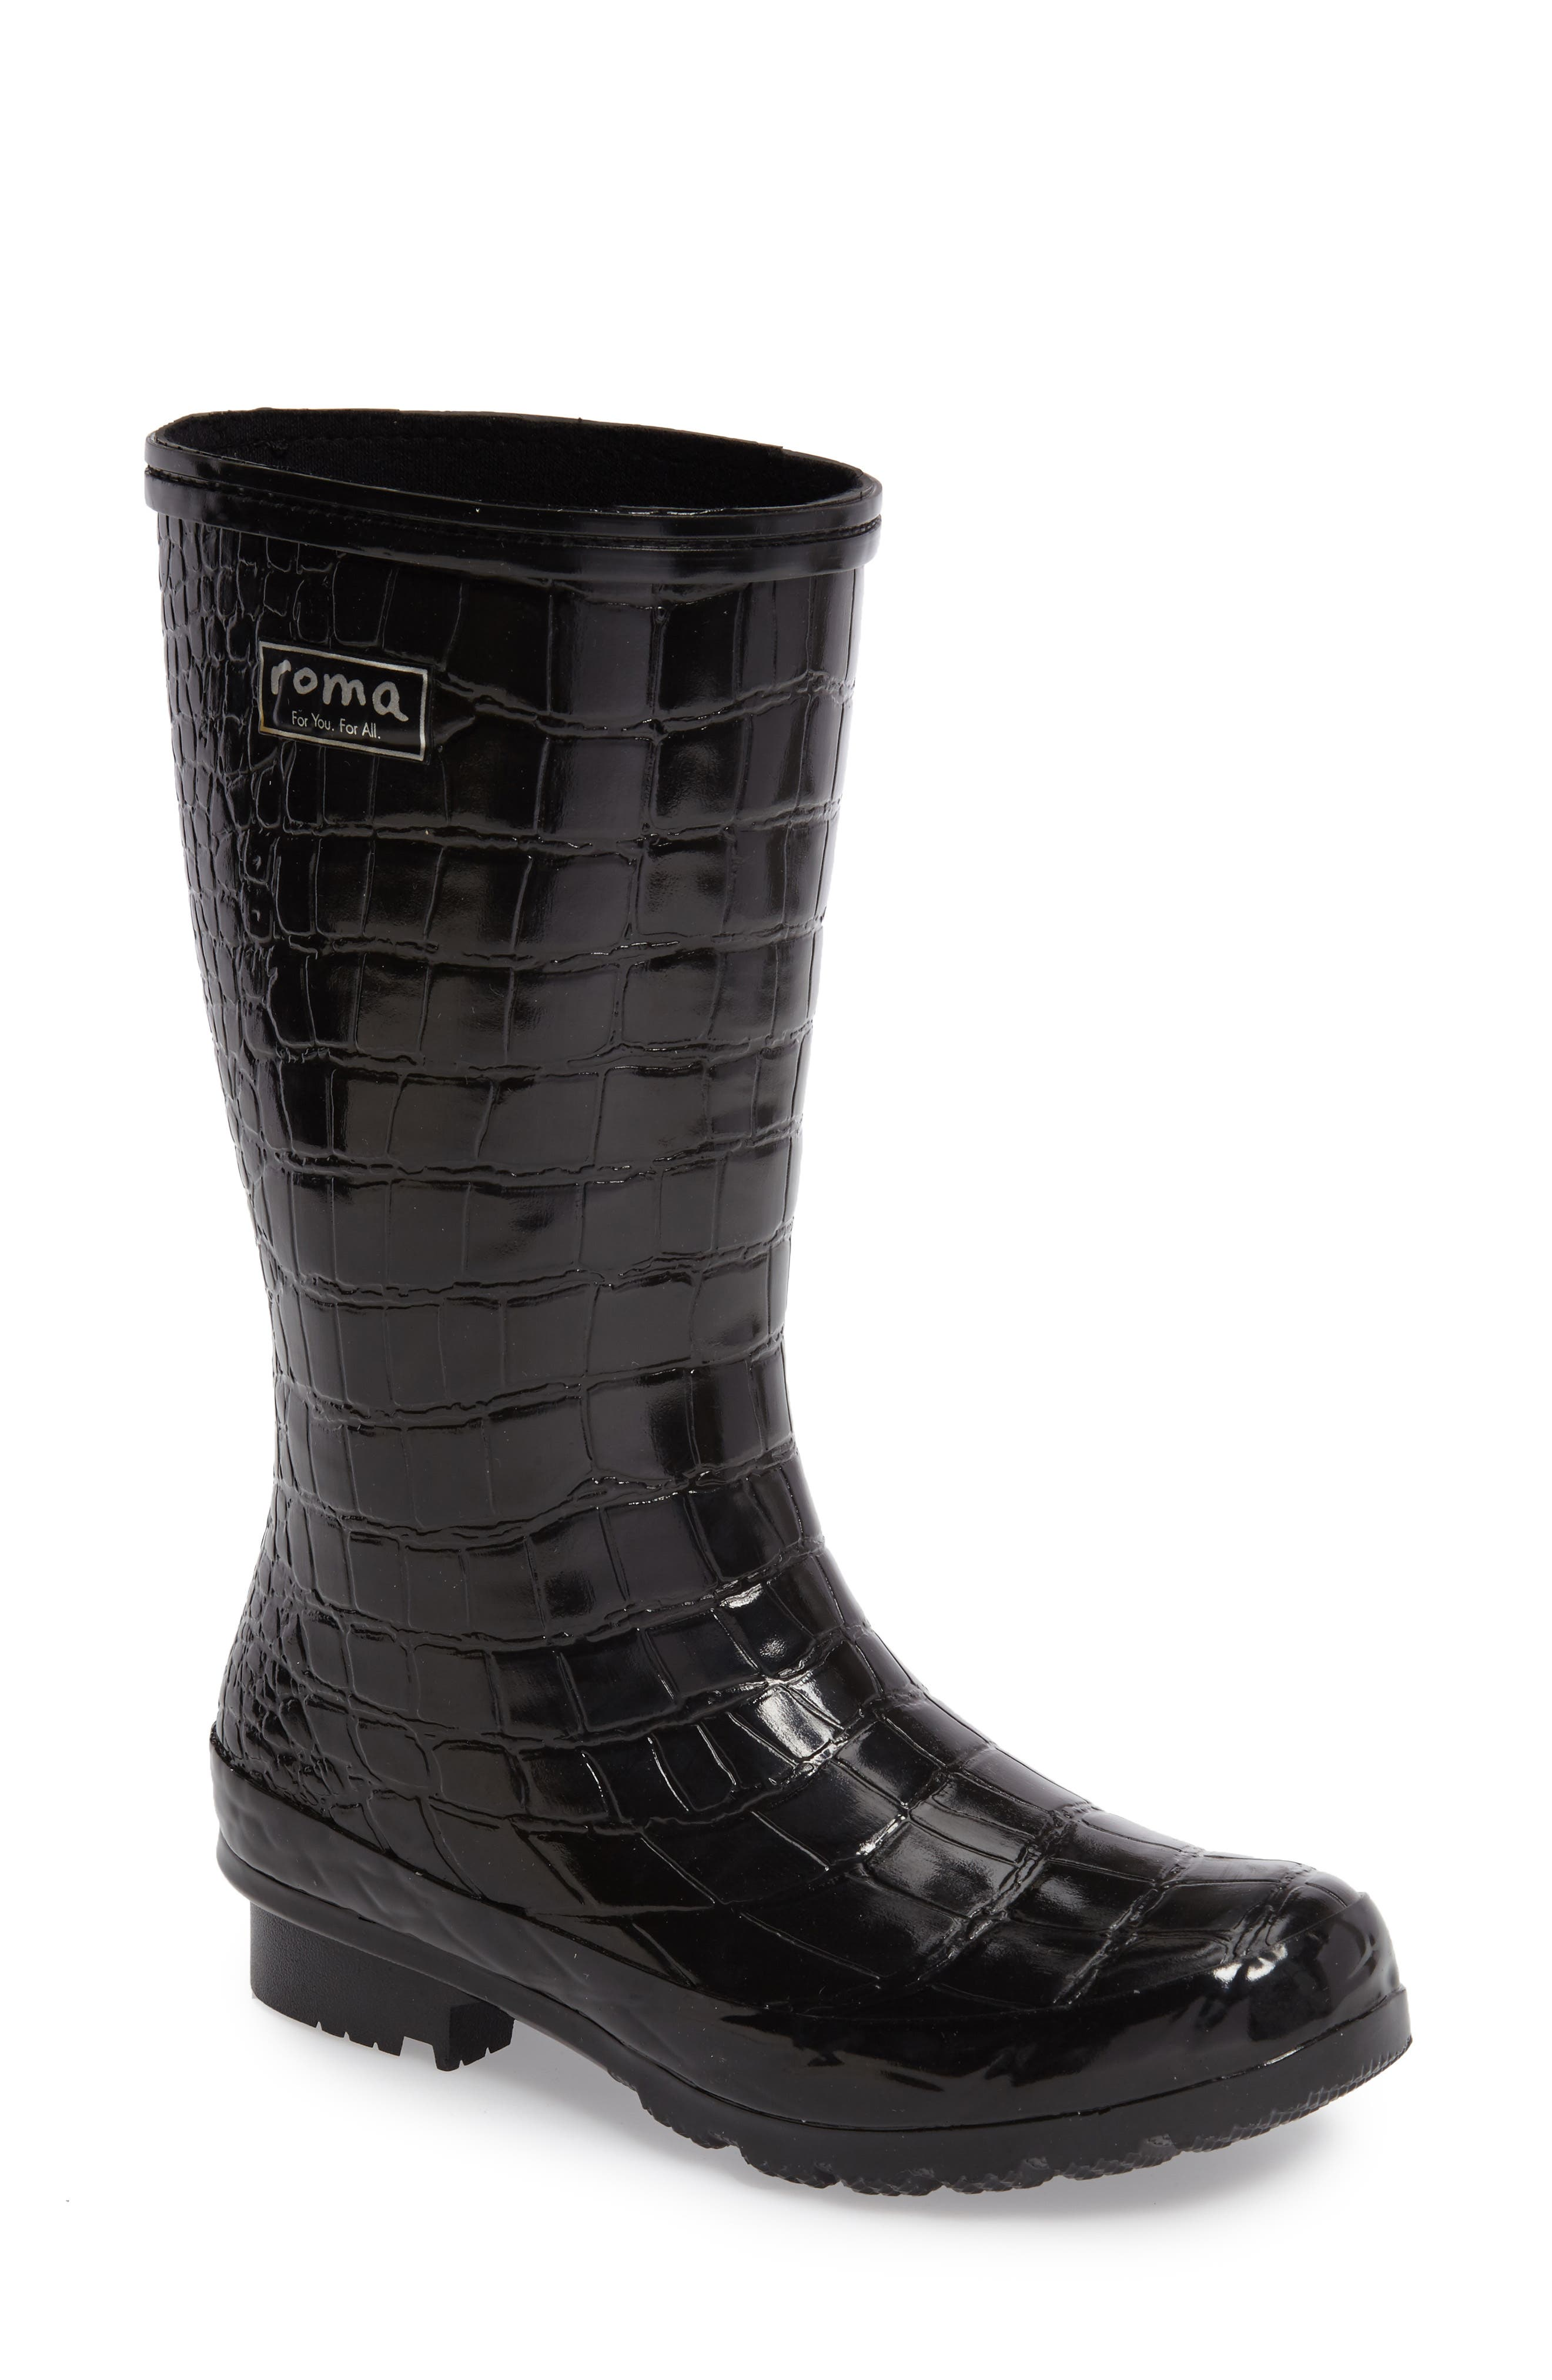 roma Short Rain Boot (Women)